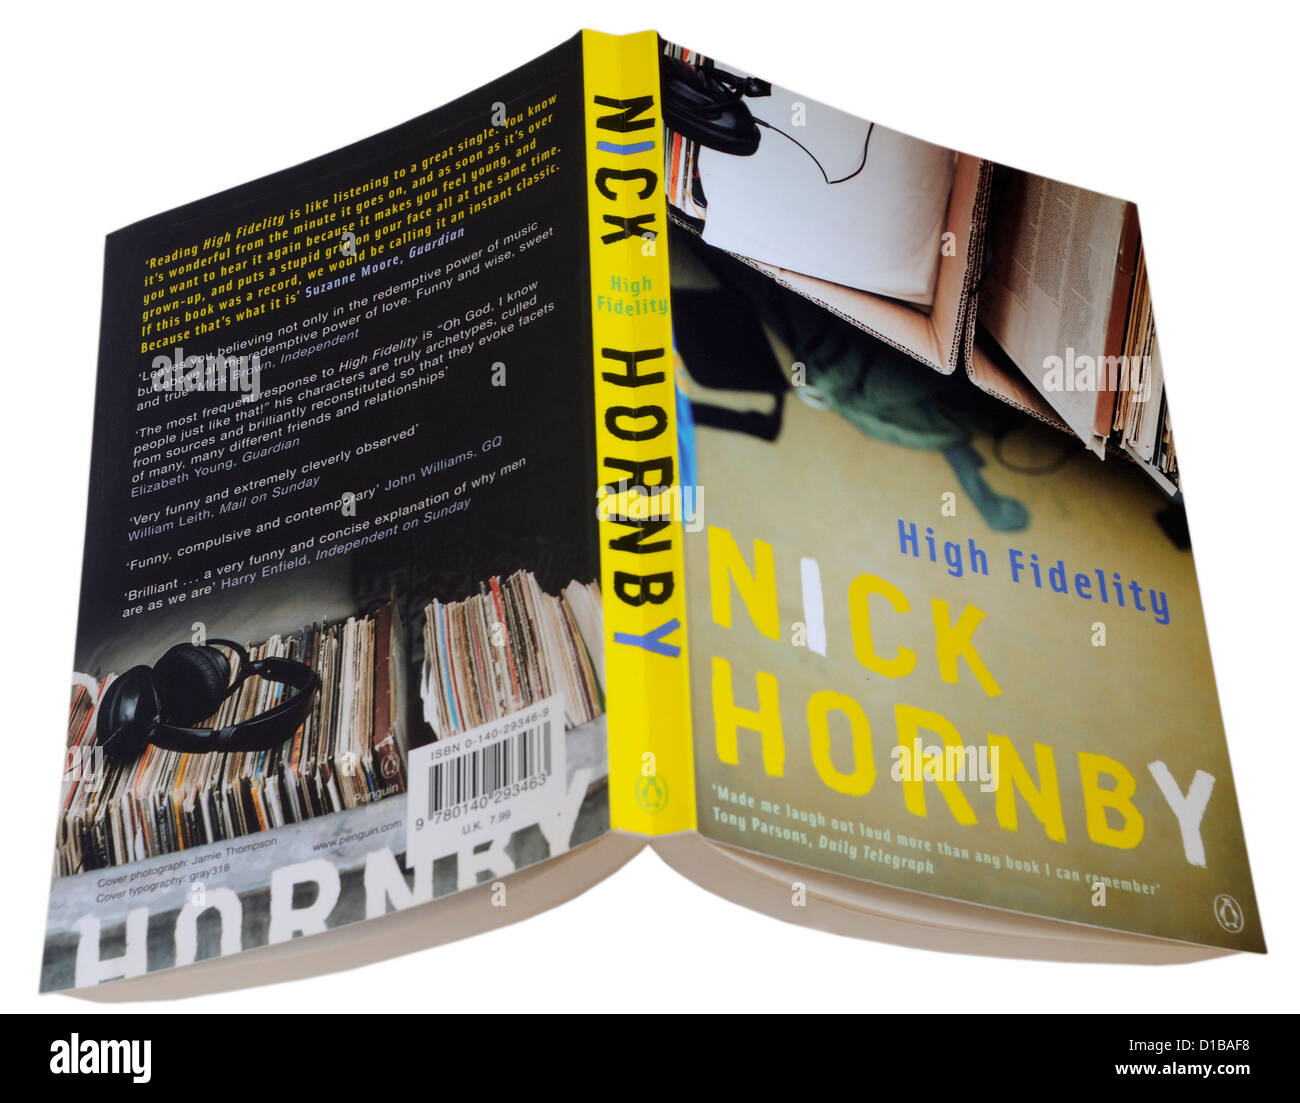 High Fidelity by Nick Hornby - Stock Image